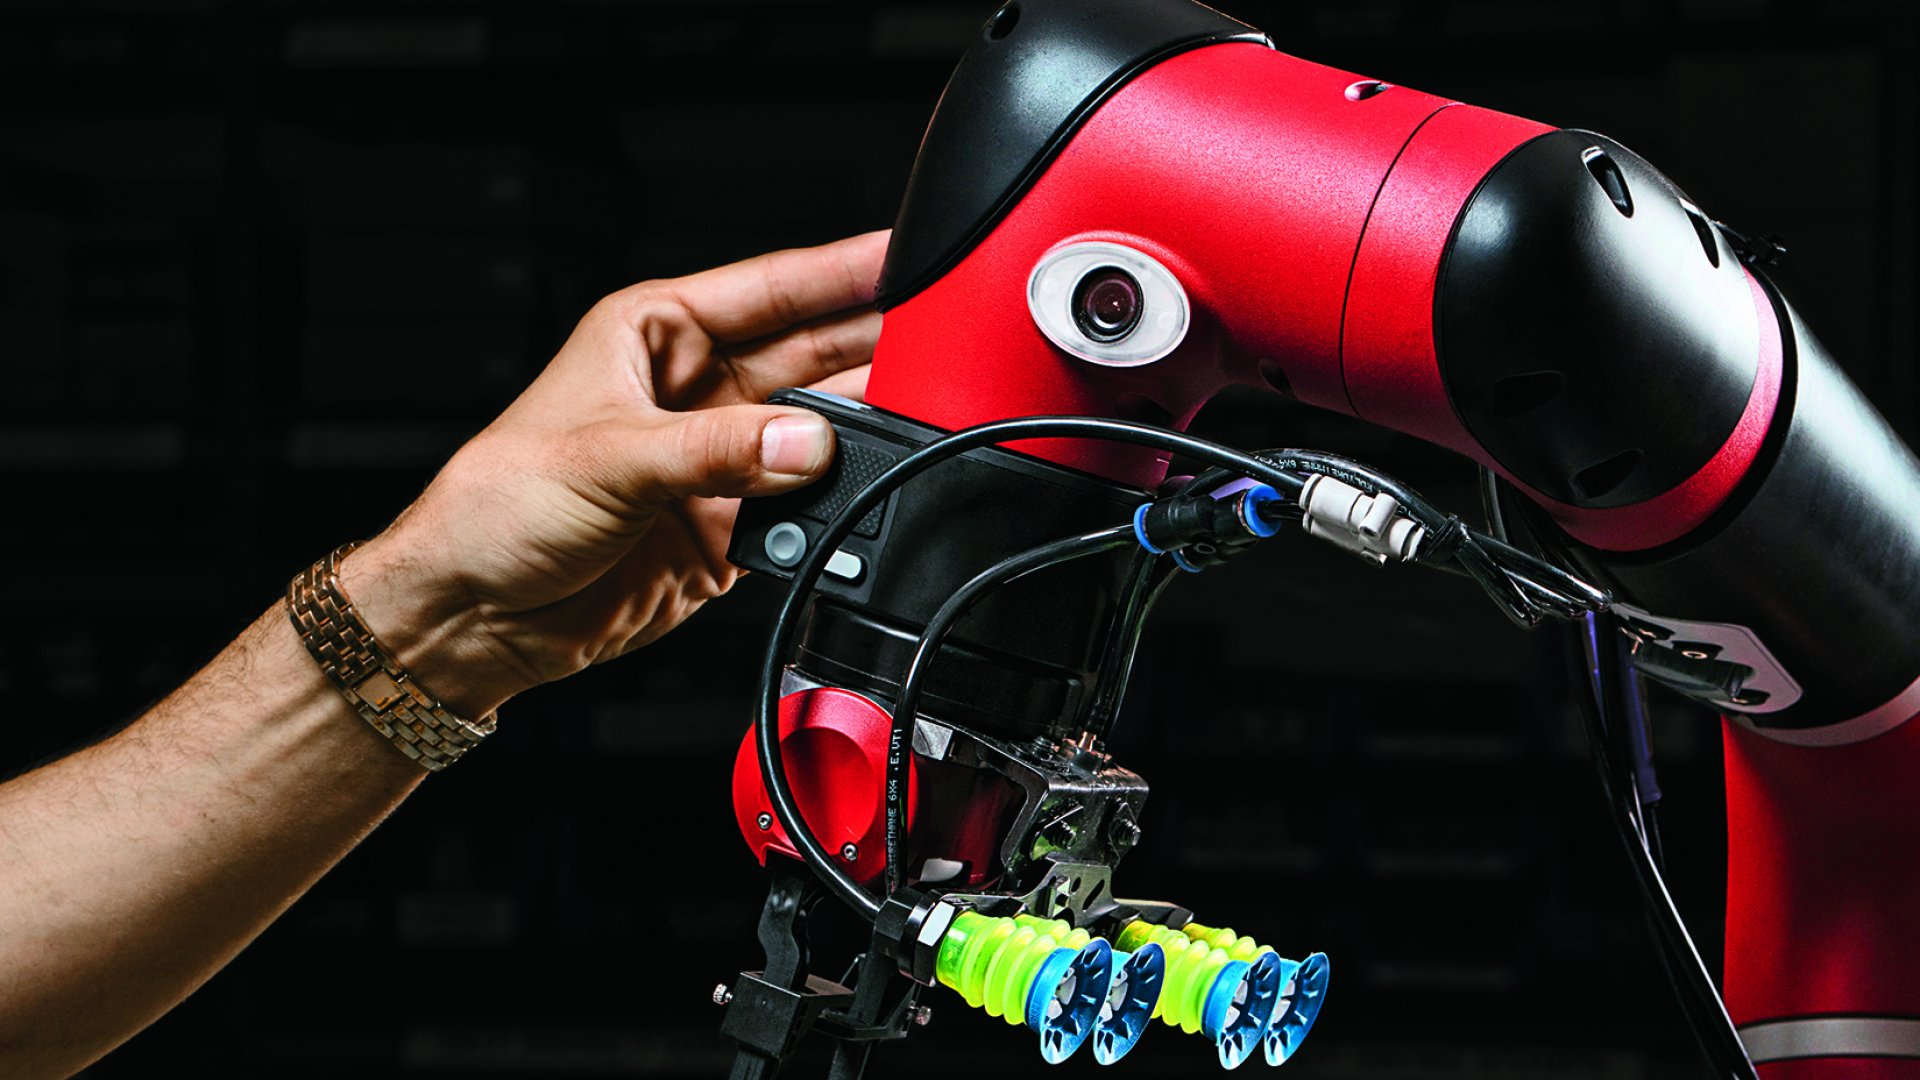 Acorn's cobot, named Sawyer, cuts blocks of wood–to which rubber stamps are affixed–and drills a hole into them for the handle, freeing up human employees for more creative tasks.